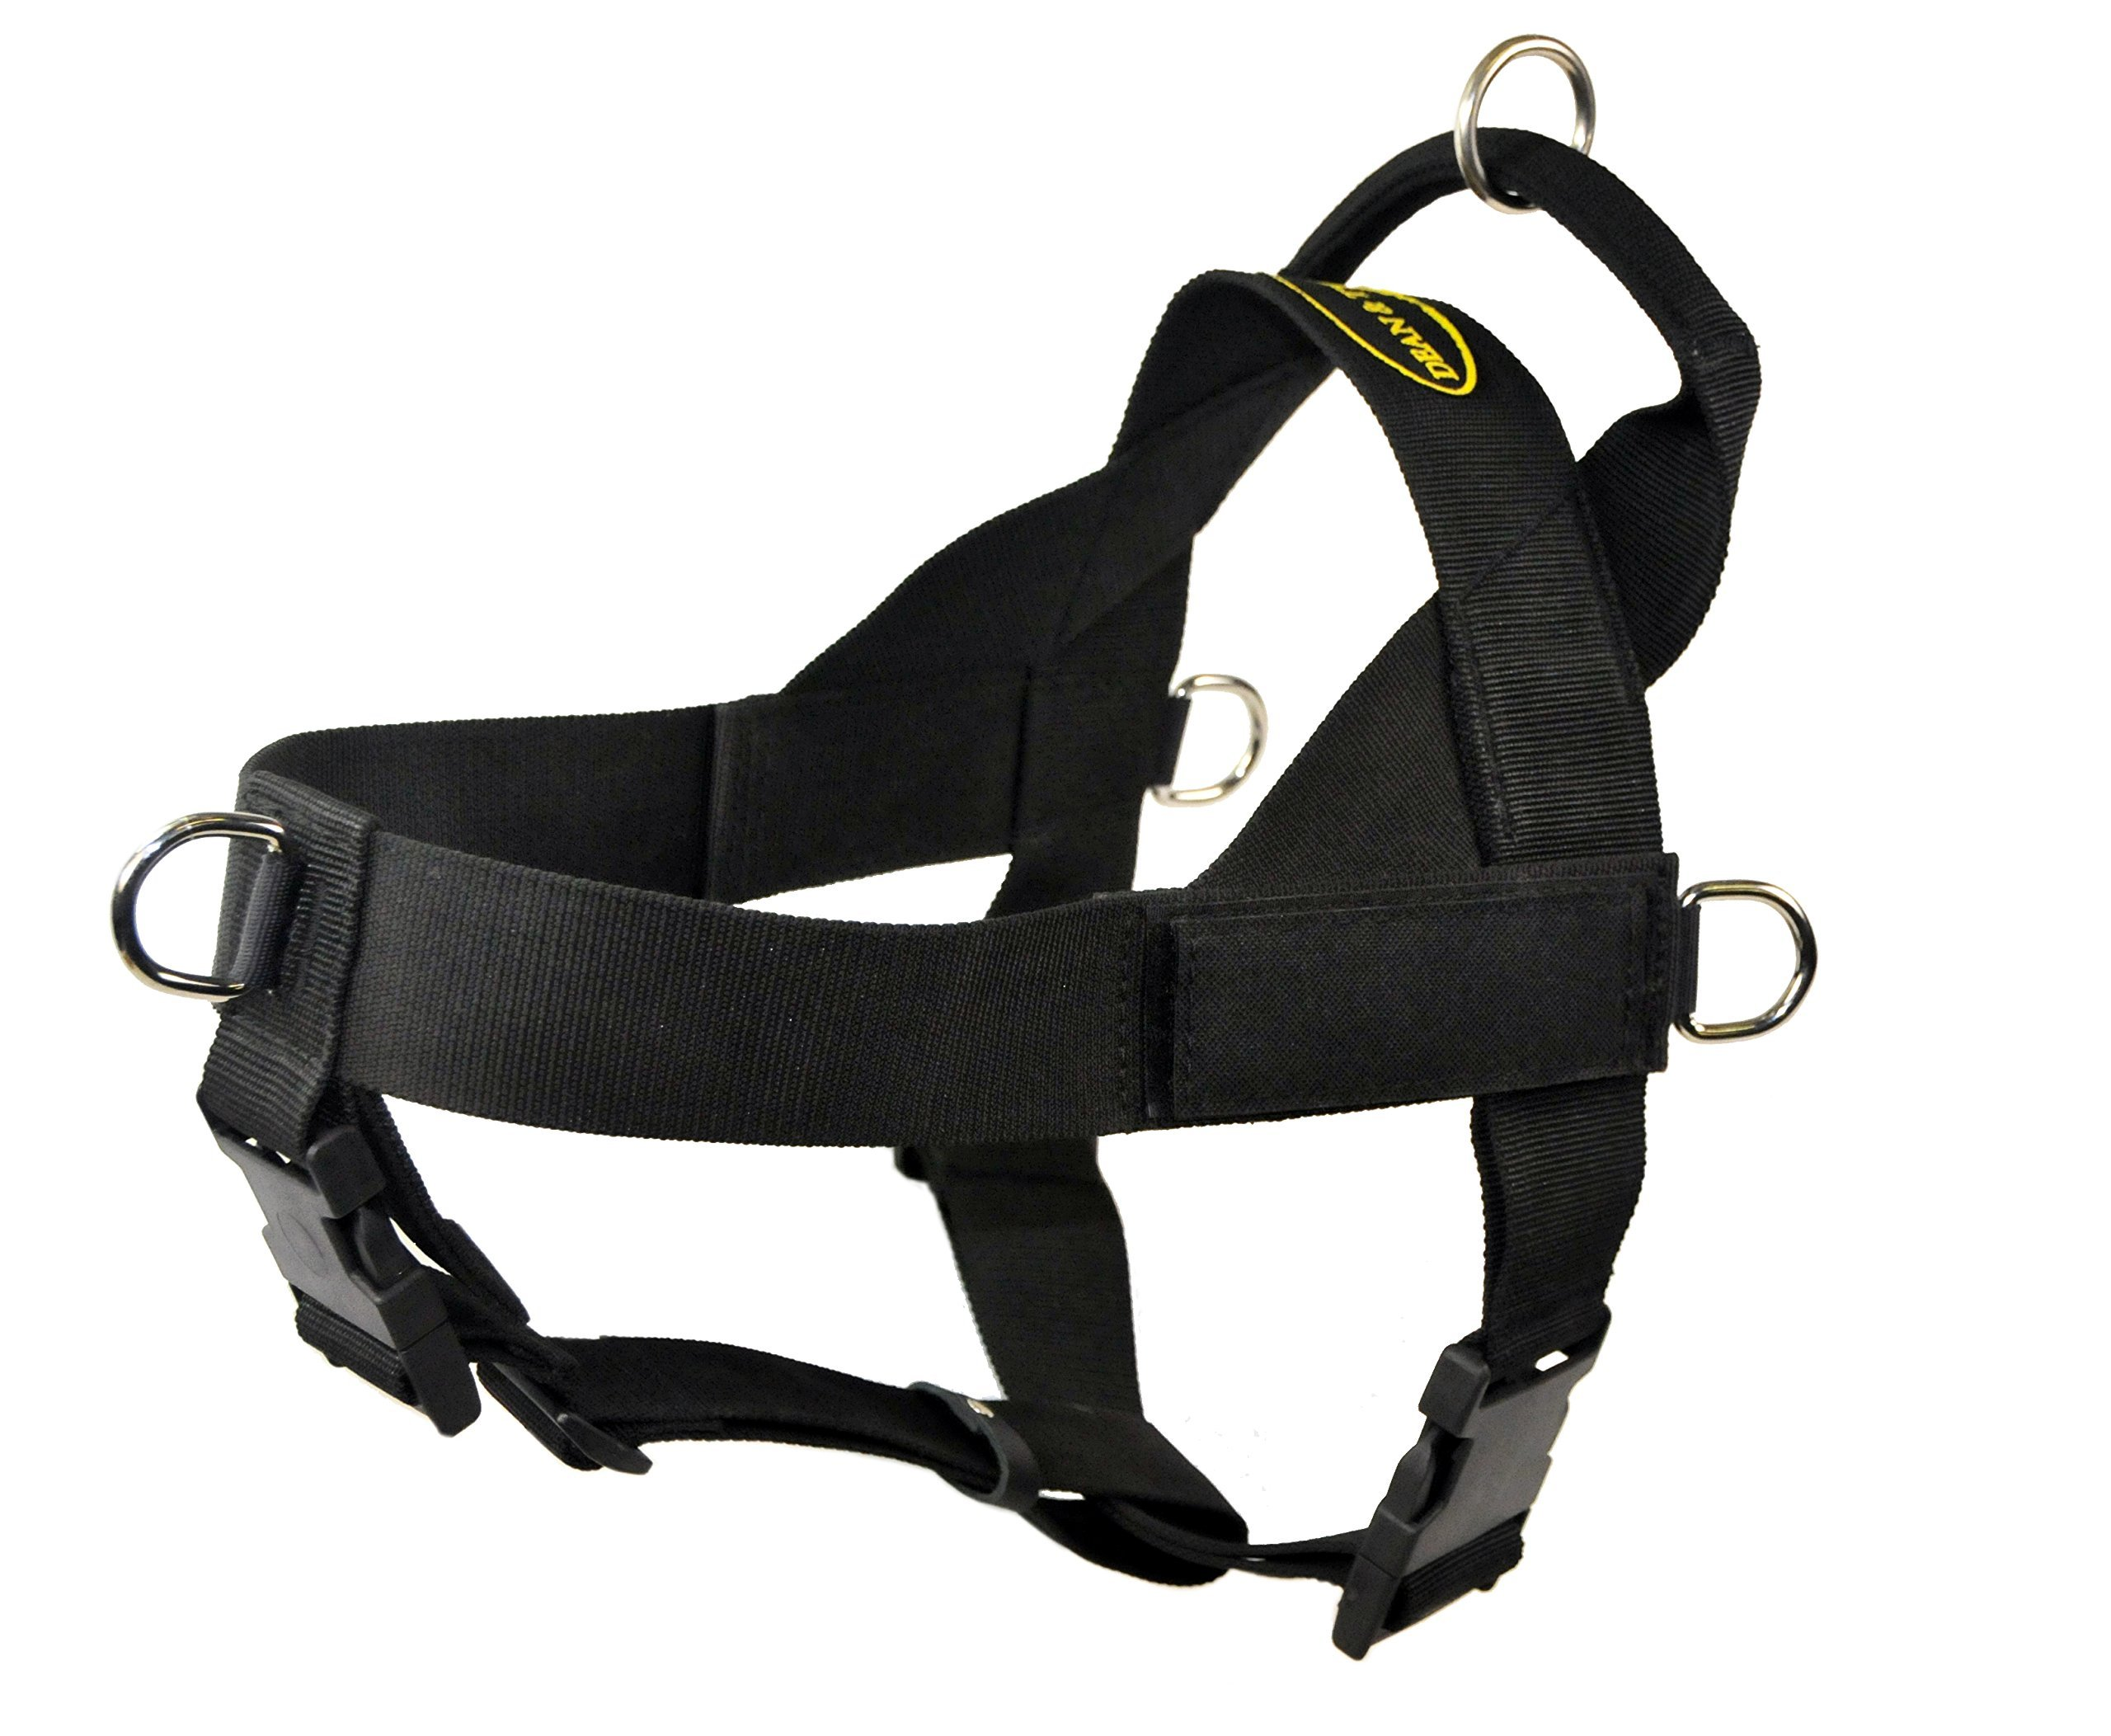 Dean & Tyler D&T UNIVERSAL BK-L DT Universal No Pull Dog Harness with Adjustable Straps, Large, Fits Girth, 79cm to 107cm, Black